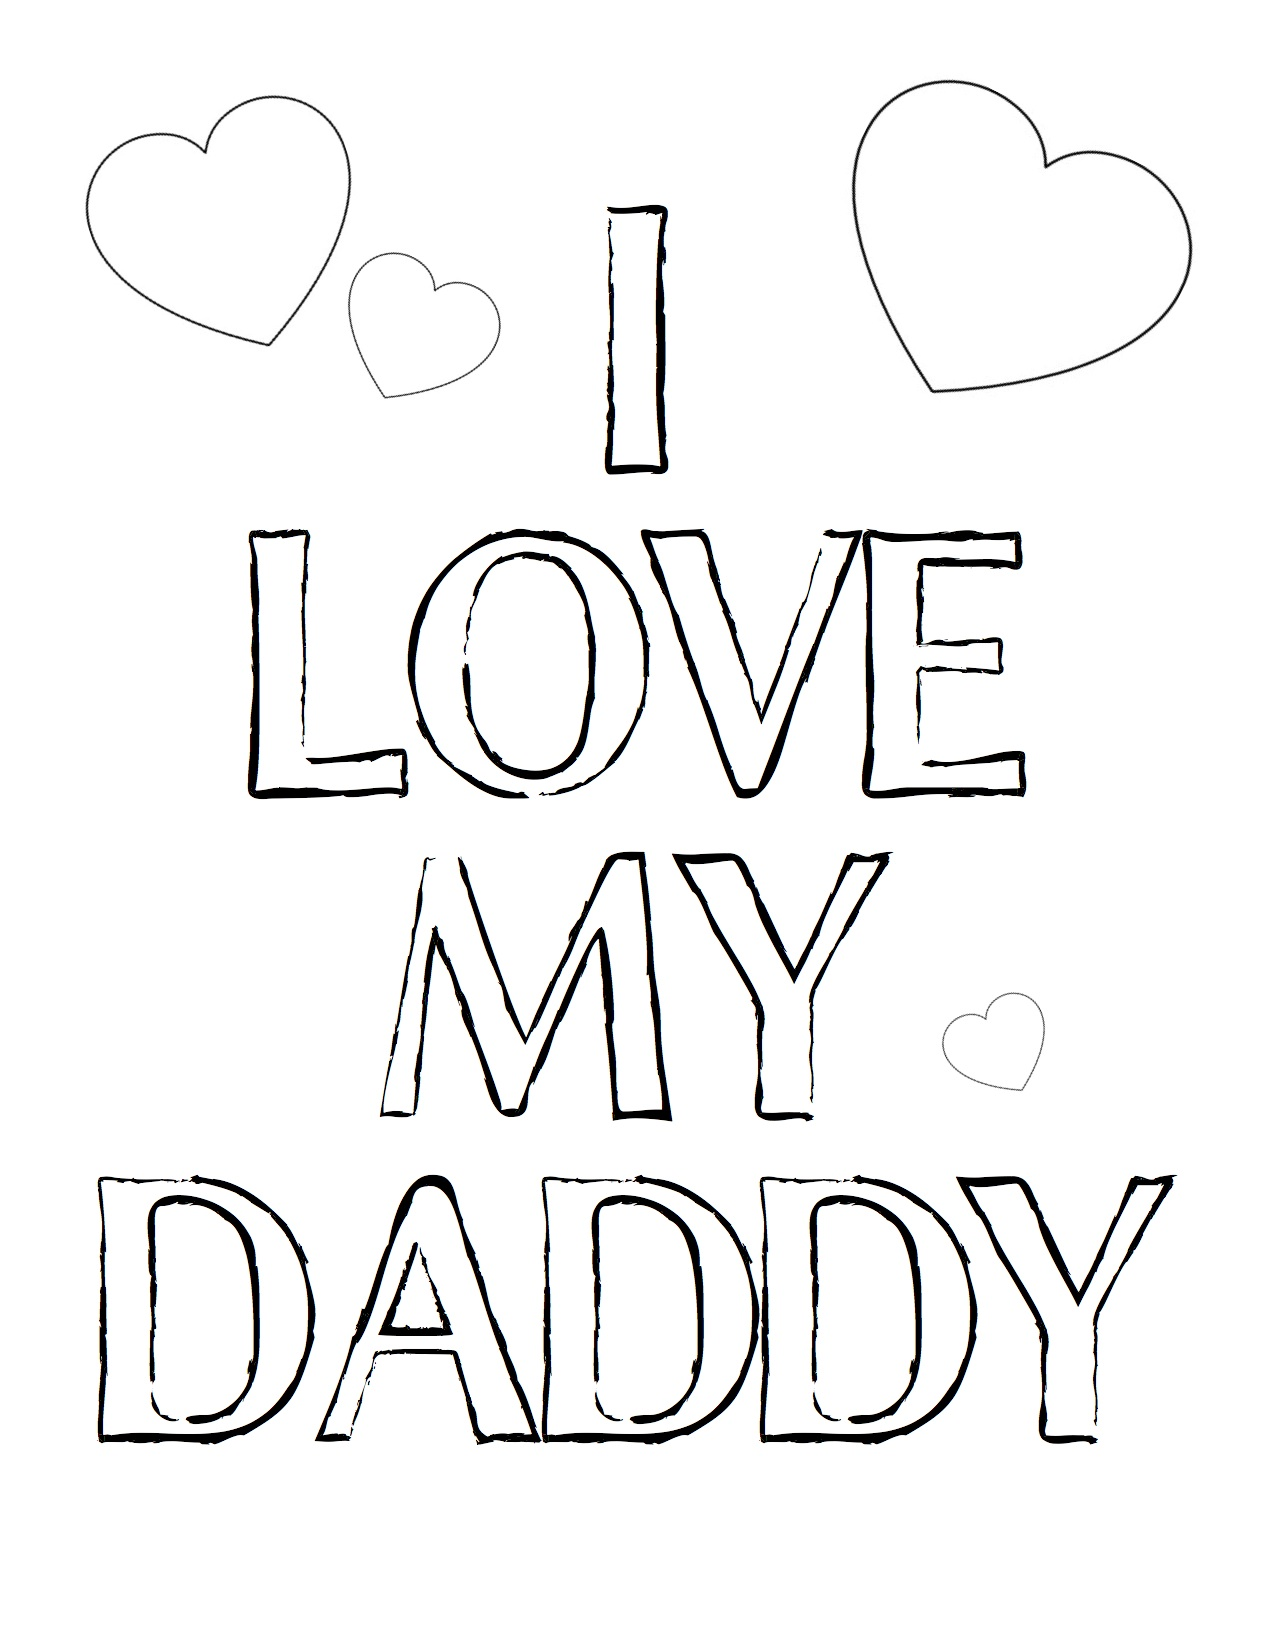 love daddy coloring pages - photo#2